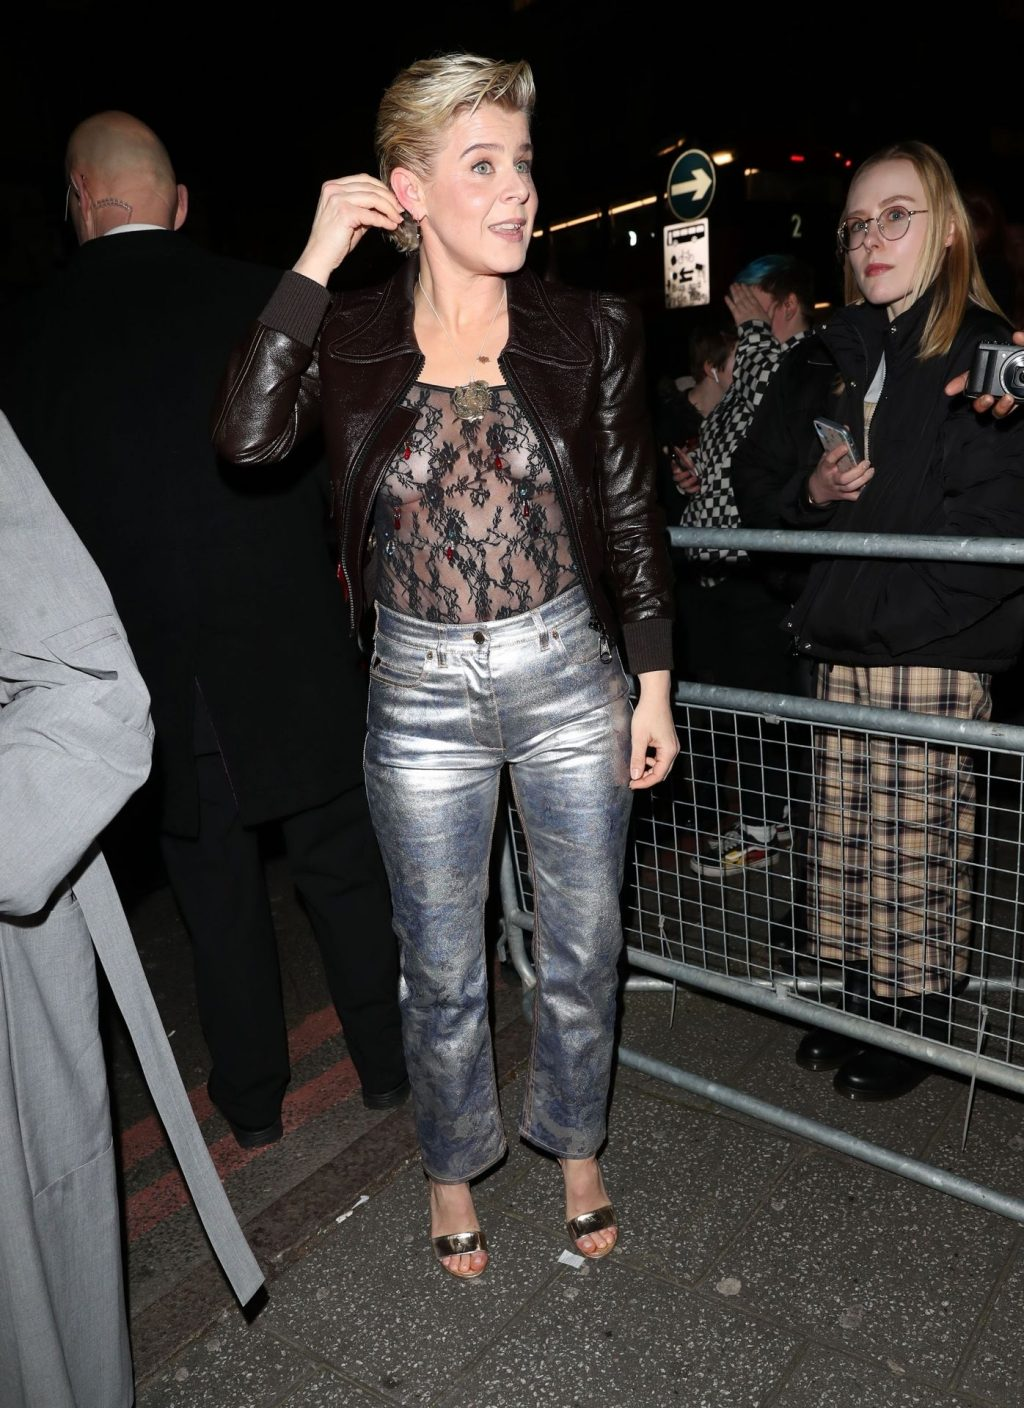 Robyn Nude See Through The Fappening Blog 9 1024x1408 - Robyn Makes Busty Appearance with a Friend Arrive at the NME Awards (14 Photos)